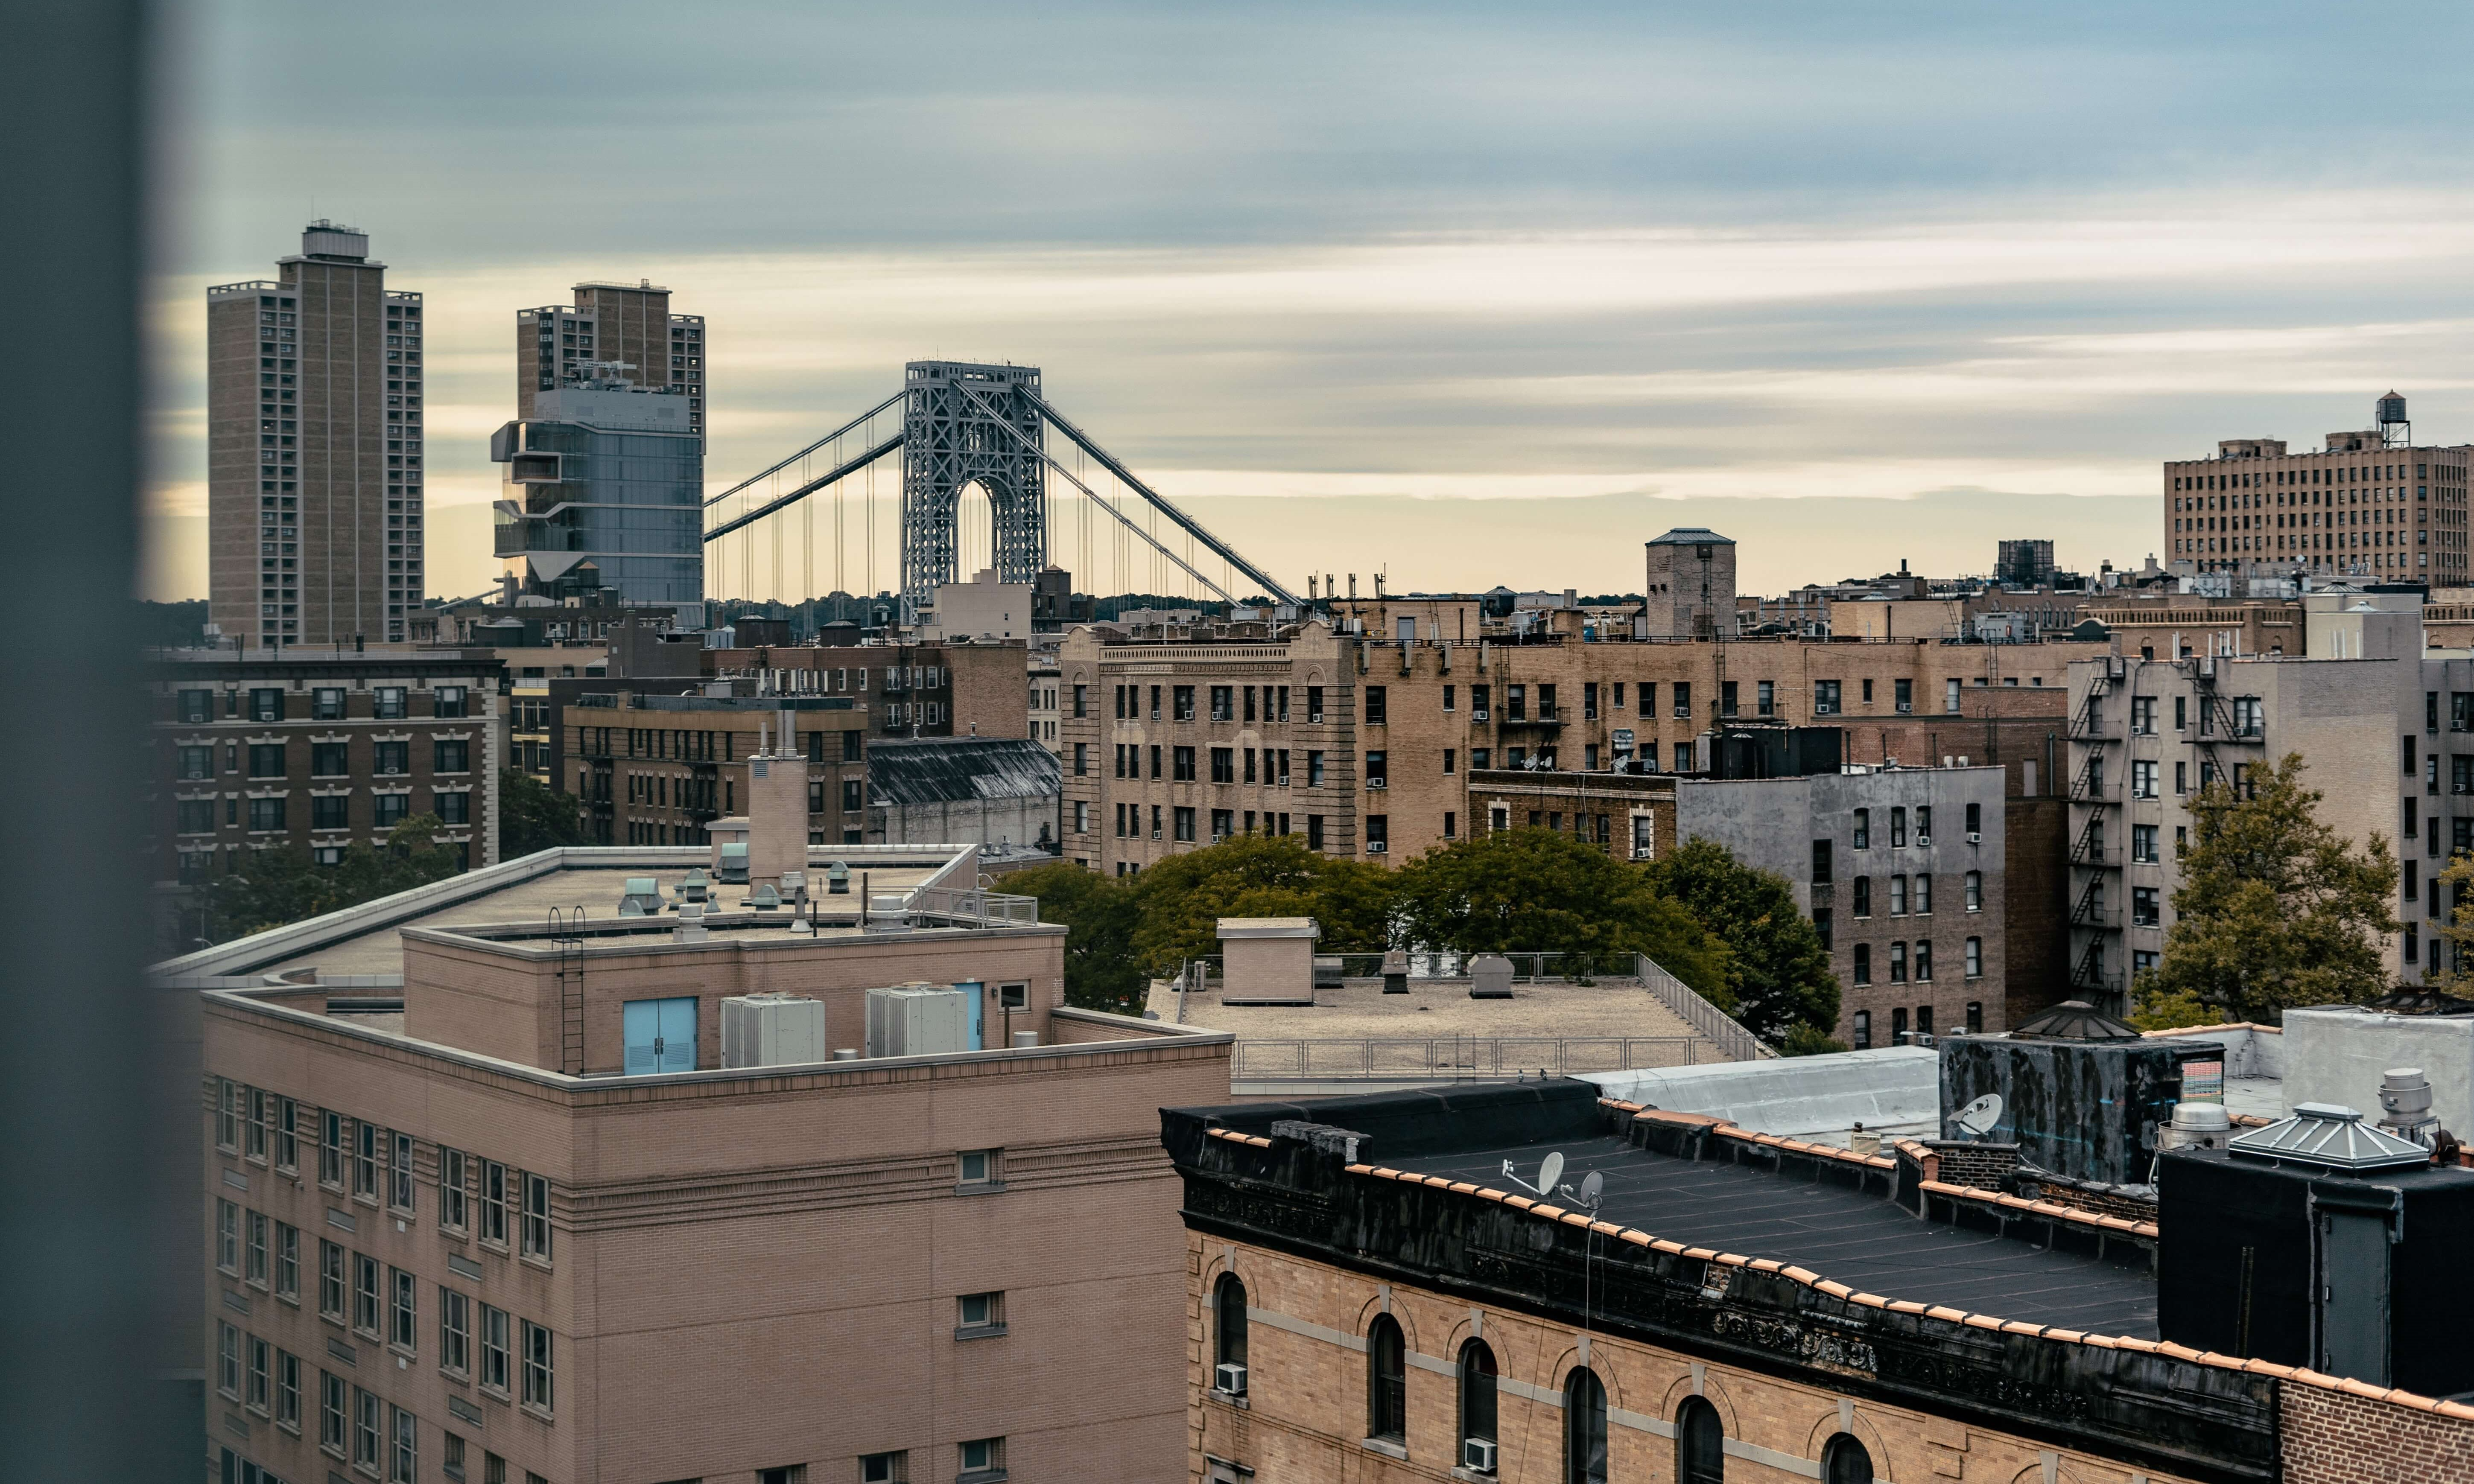 View of the bridge from Washington Heights